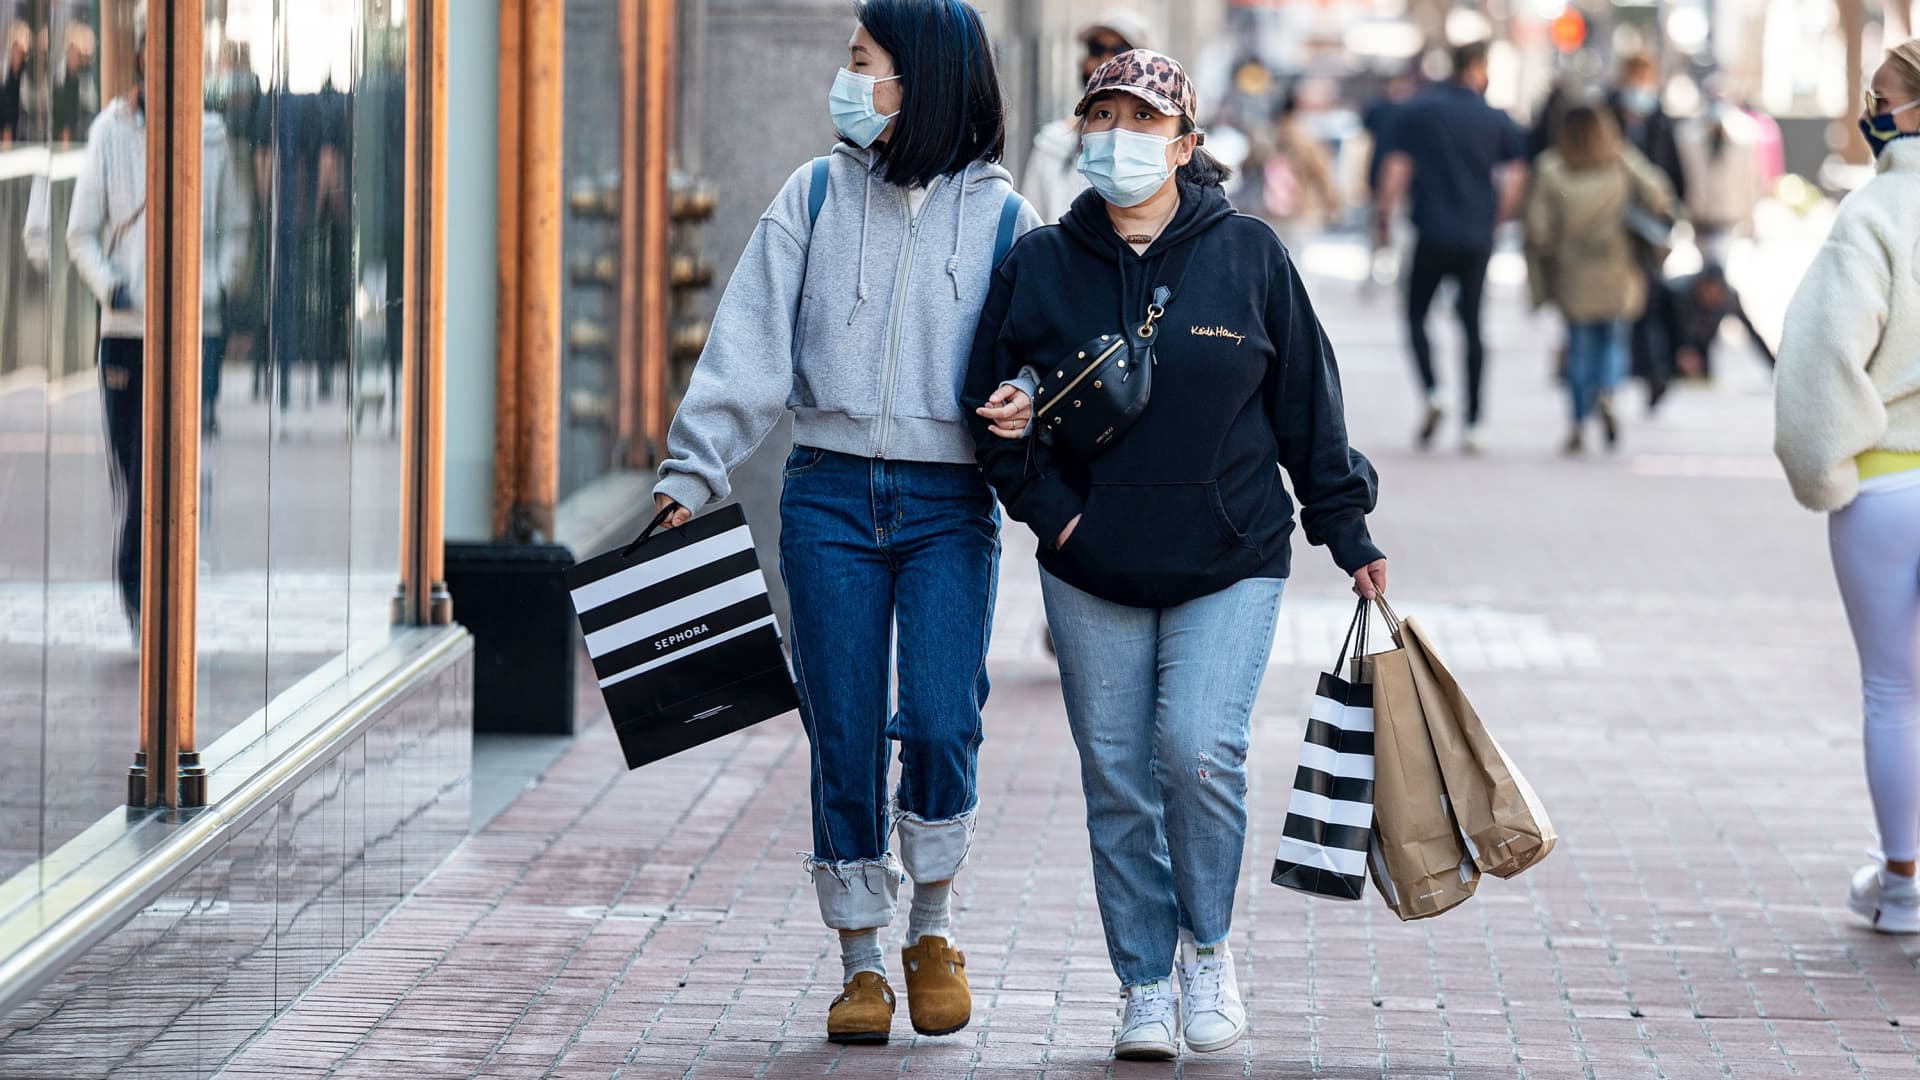 Shoppers wearing protective masks carry bags on Market Street in San Francisco, California, on Wednesday, April 14, 2021.